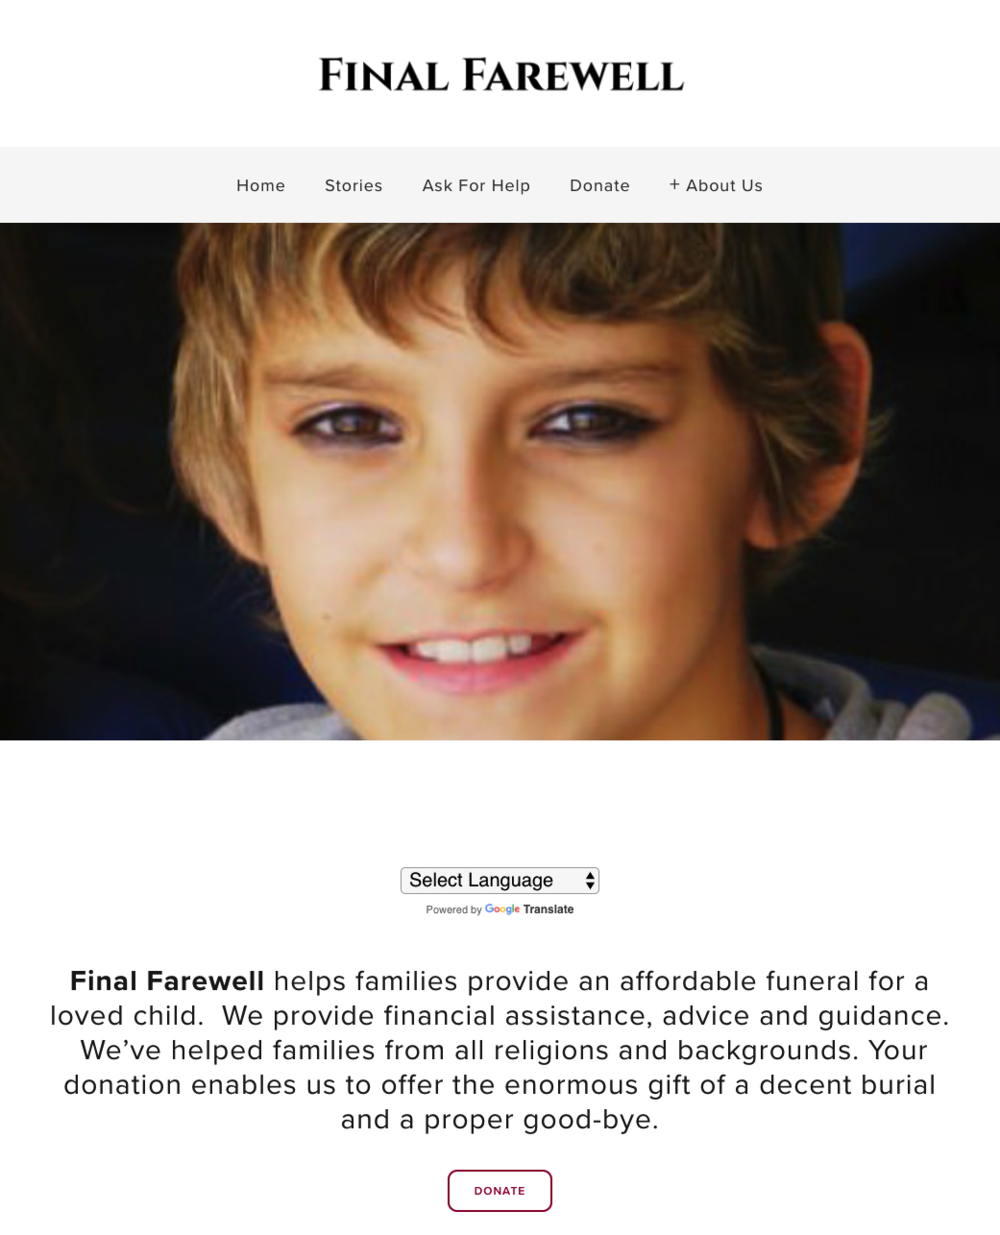 Squarespace   website design  Final Farewell  The charity helps families provide an affordable funeral for a loved child.   The site was built with Squarespace's Adirondack template modified with custom CSS and Google Translate code injections.    READ MORE >>